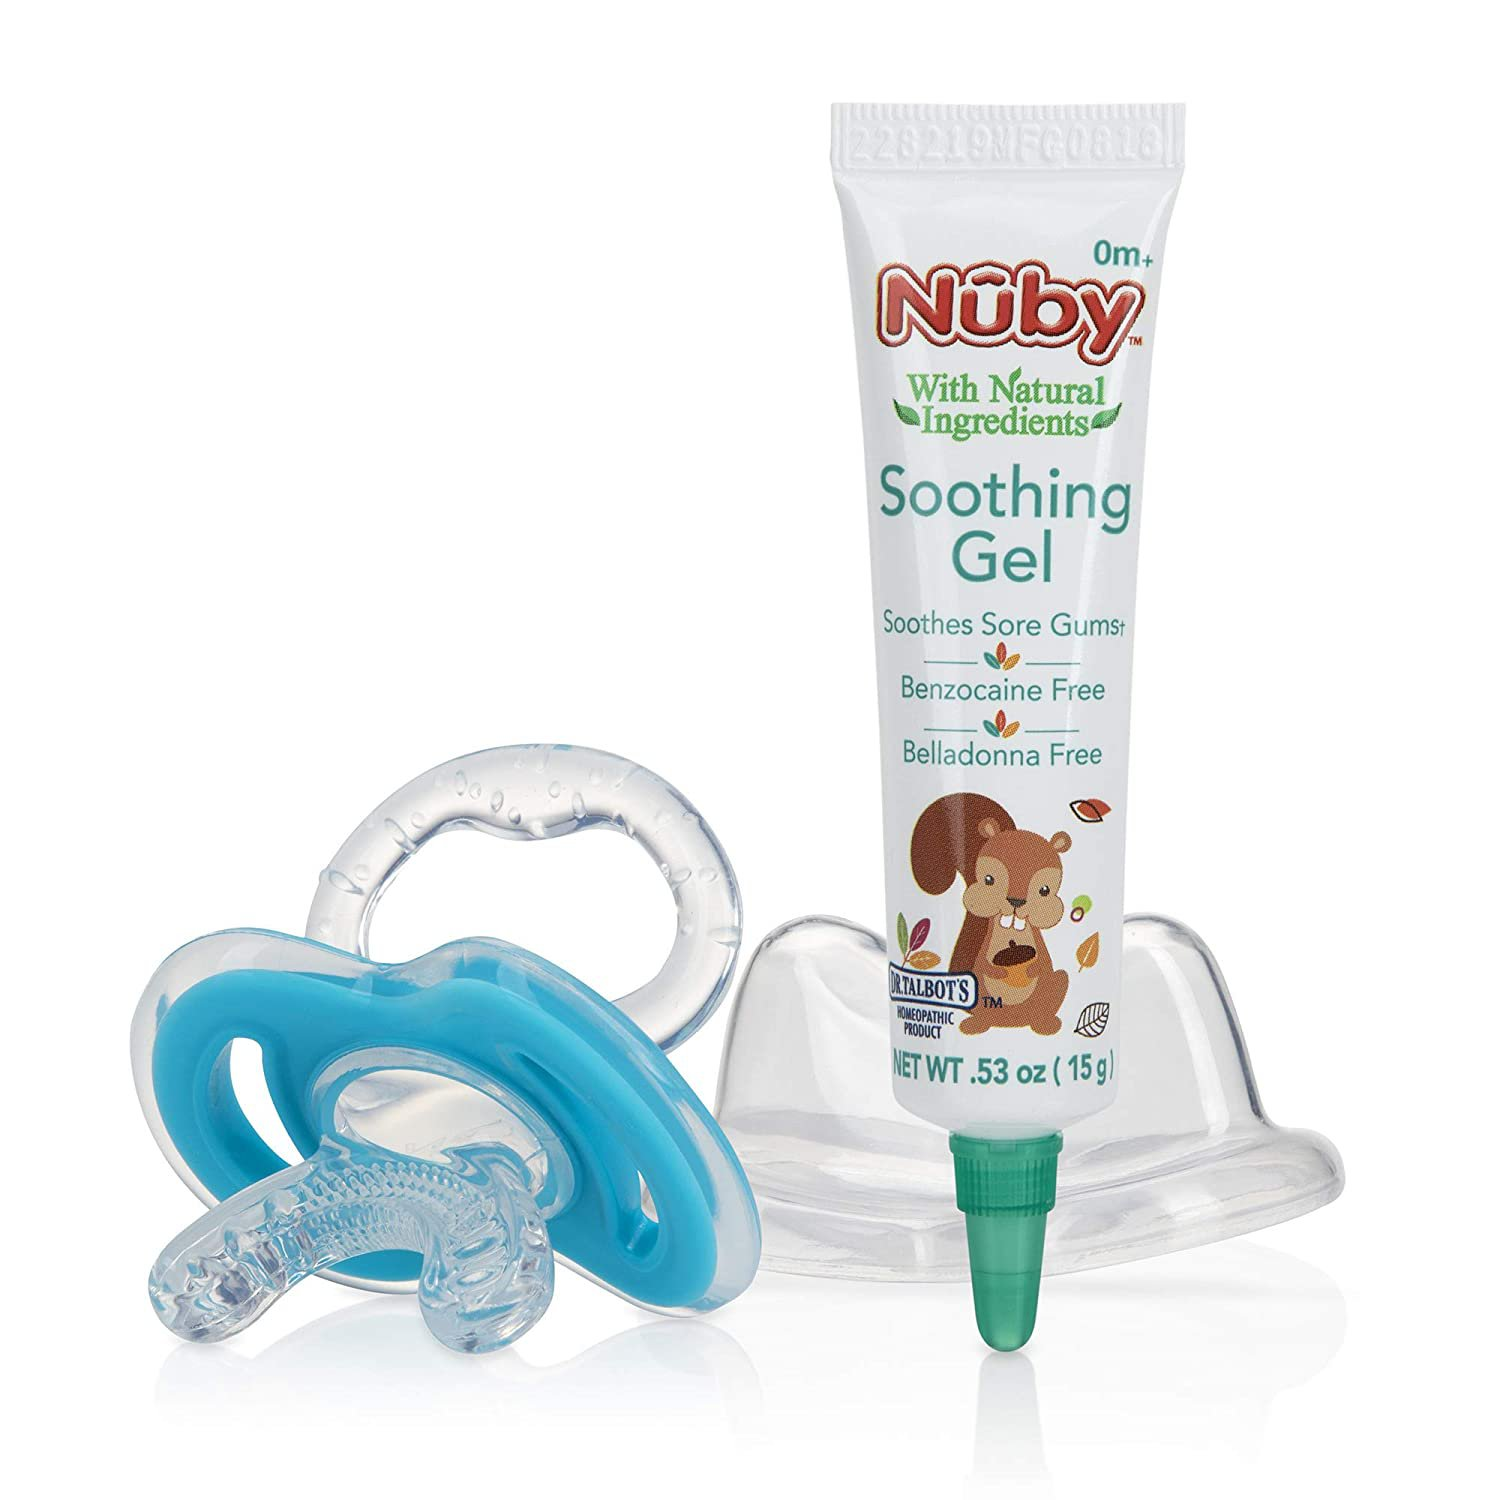 Nuby Dr. Talbot's Soothing Gel with Natural Ingredients 0.53 oz with Gum Eez Teether